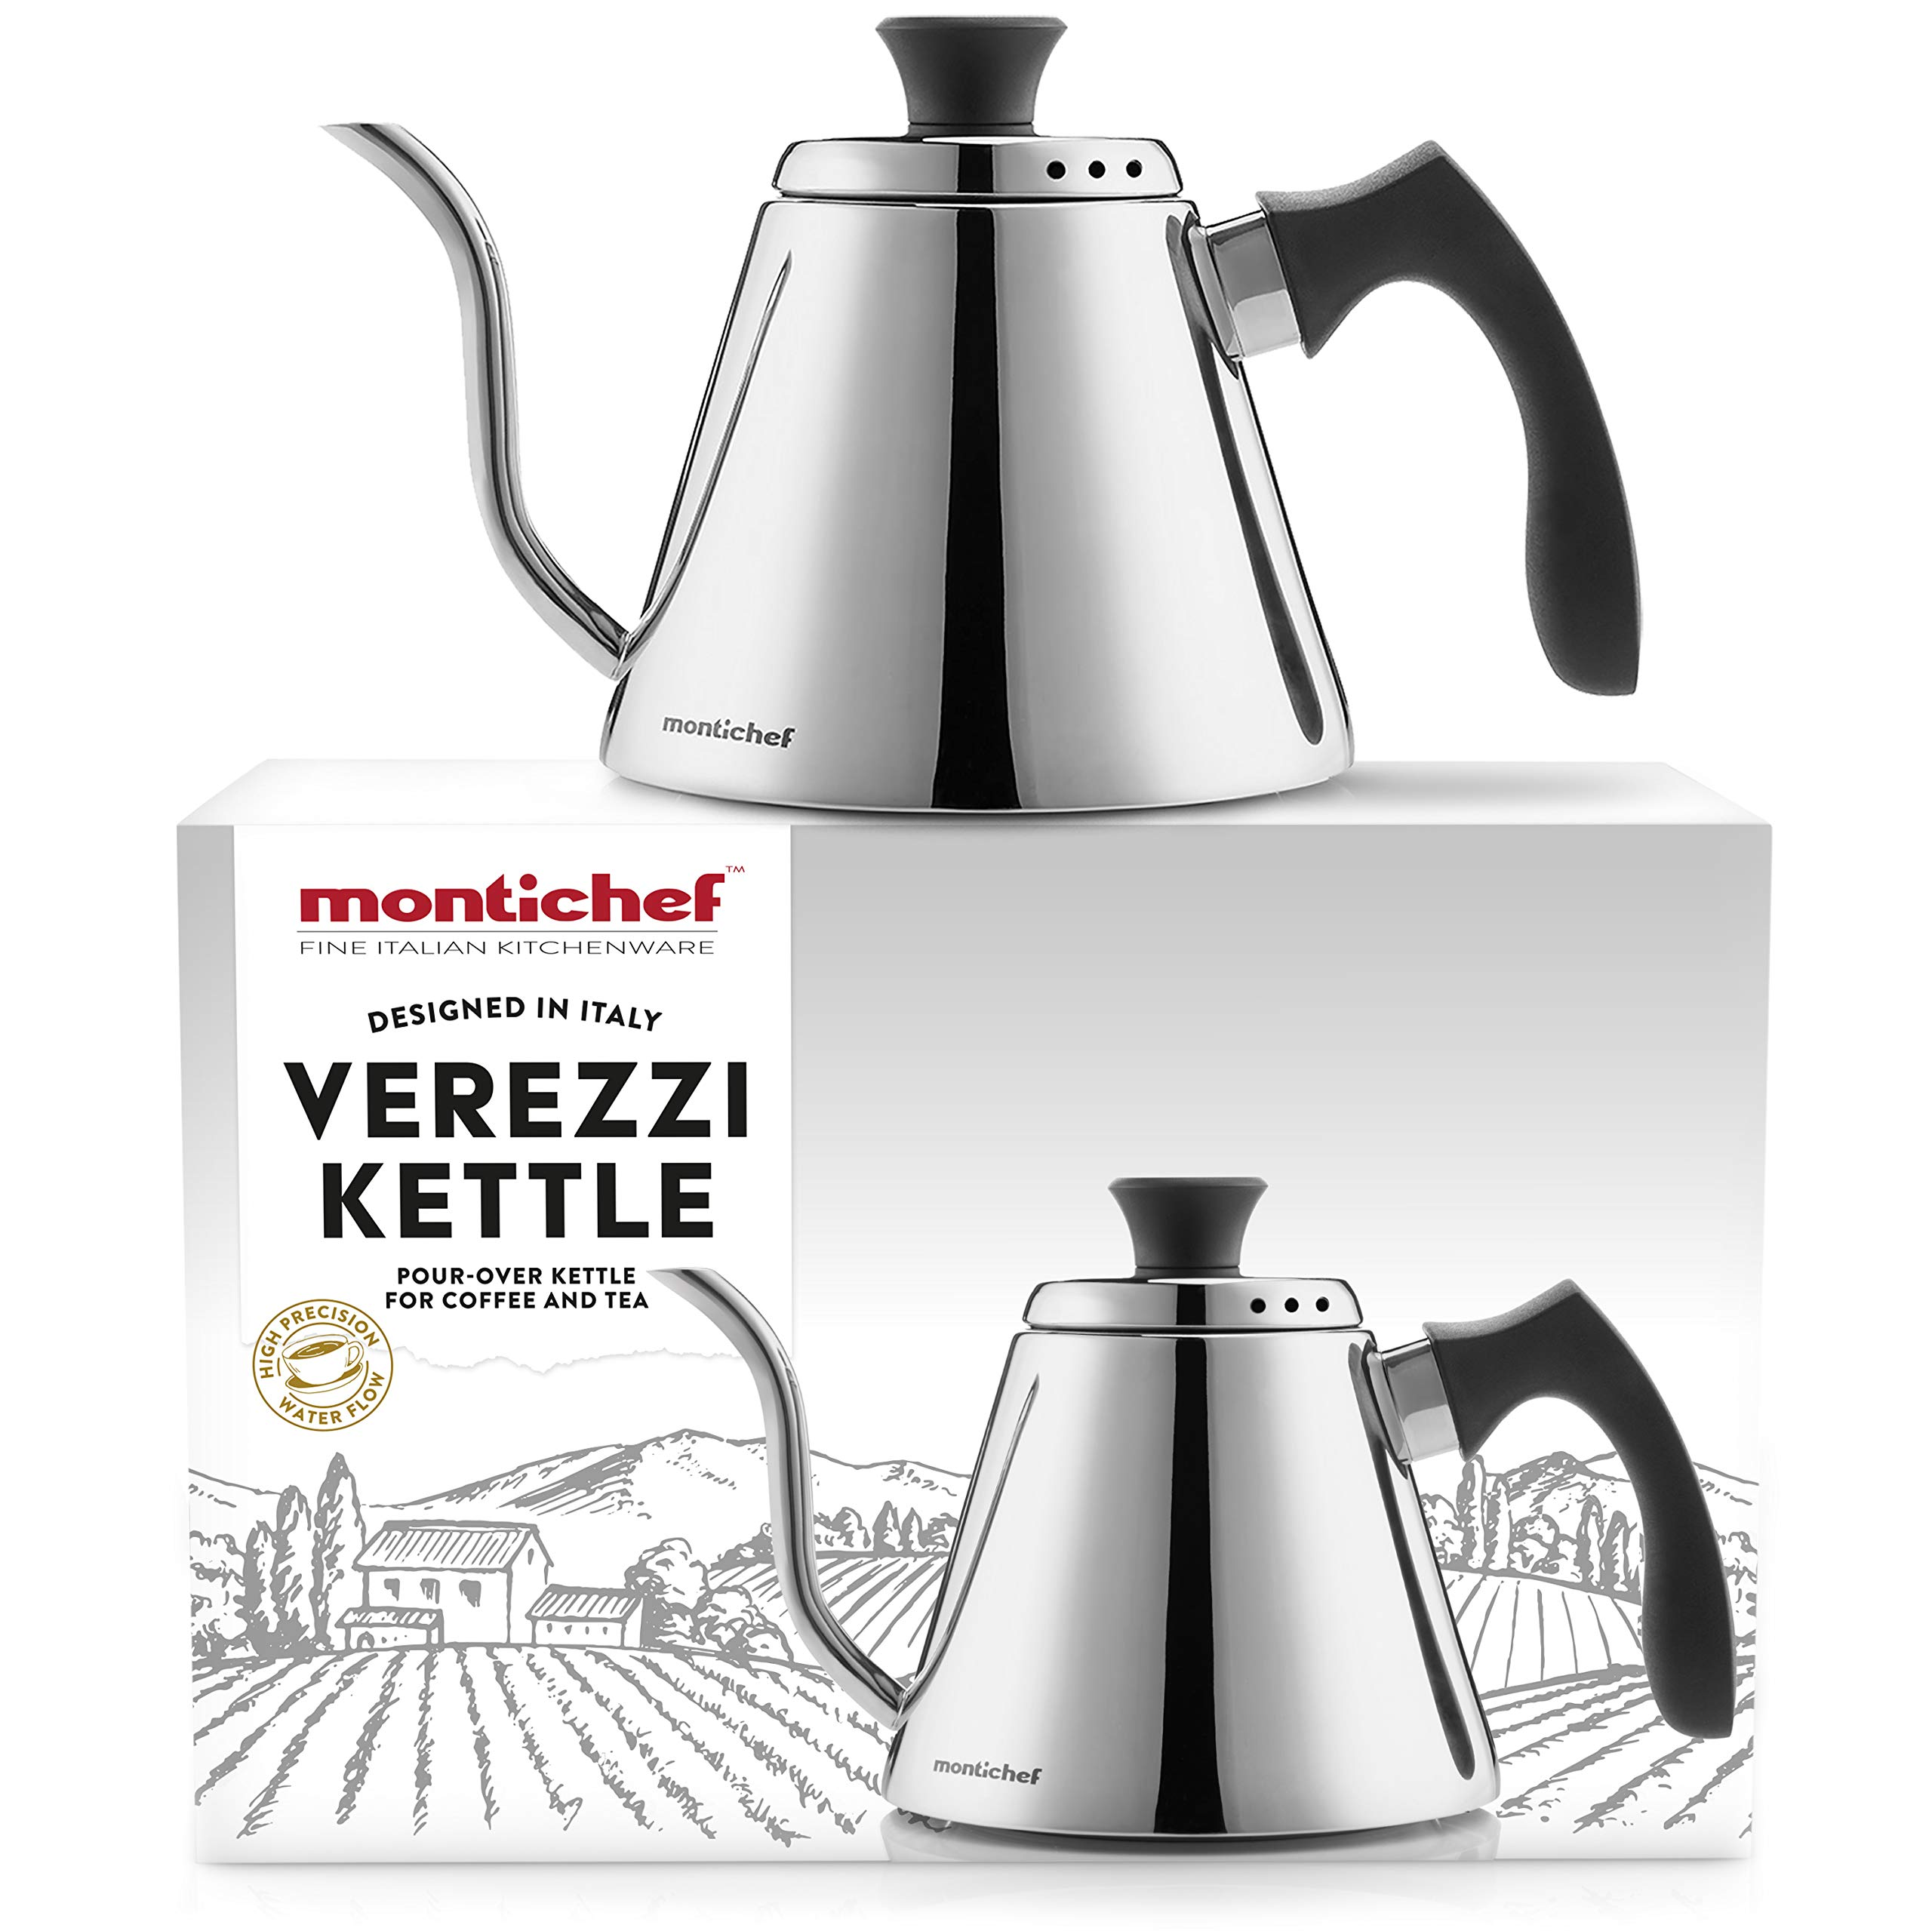 Montichef Verezzi Pour Over Gooseneck Drip Kettle for Coffee and Tea - Italian Design 1l Stainless Steel Stovetop Hand Brewer Pot - High Precision Spout Water Flow and Increased Temperature Stability by Montichef